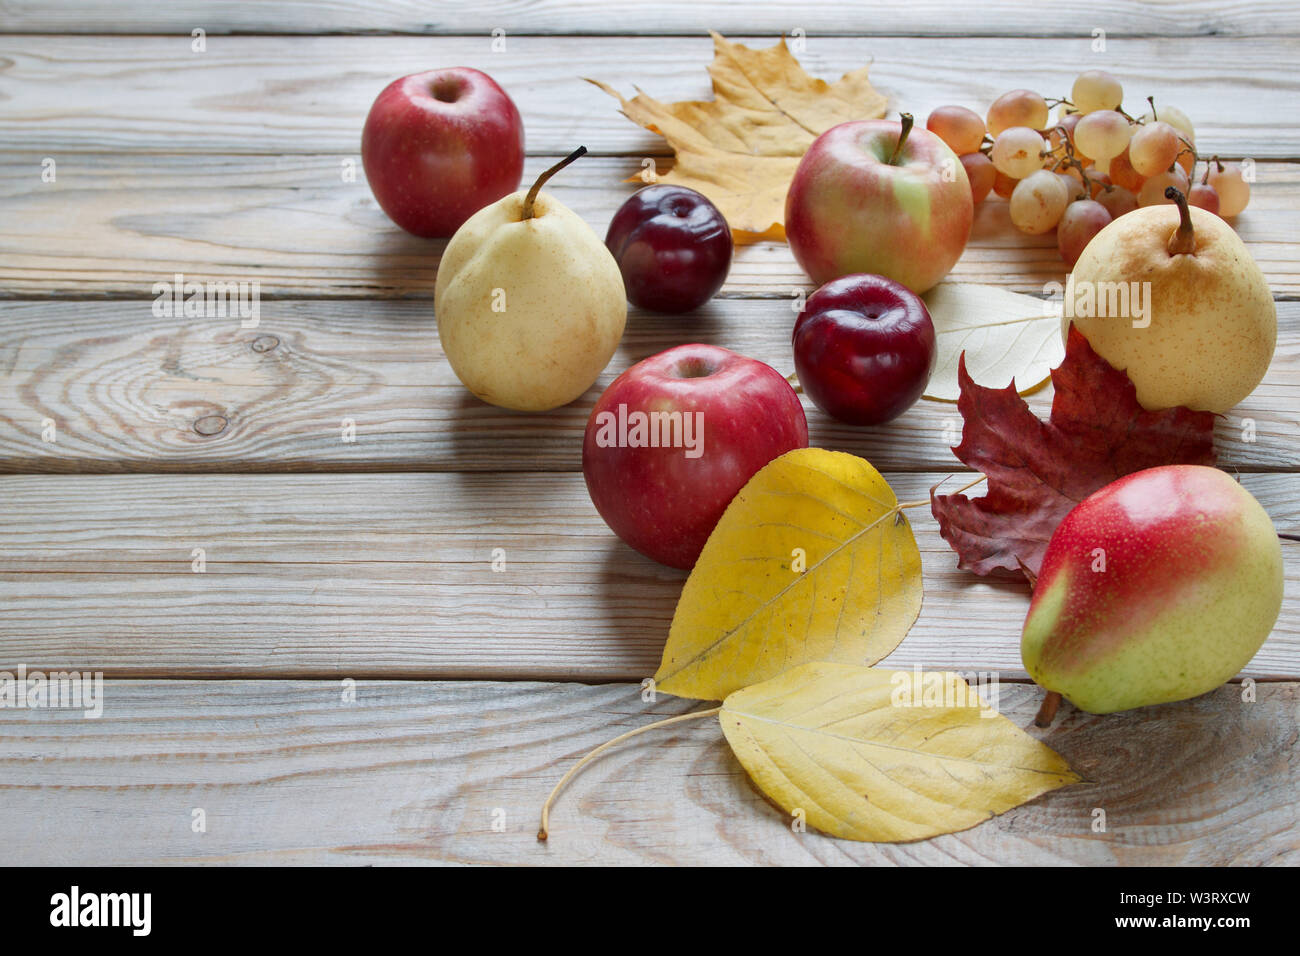 Autumn still life with various fruits are lying on a wooden desk. Autumn maple and other leaves. Harvesting. - Stock Image